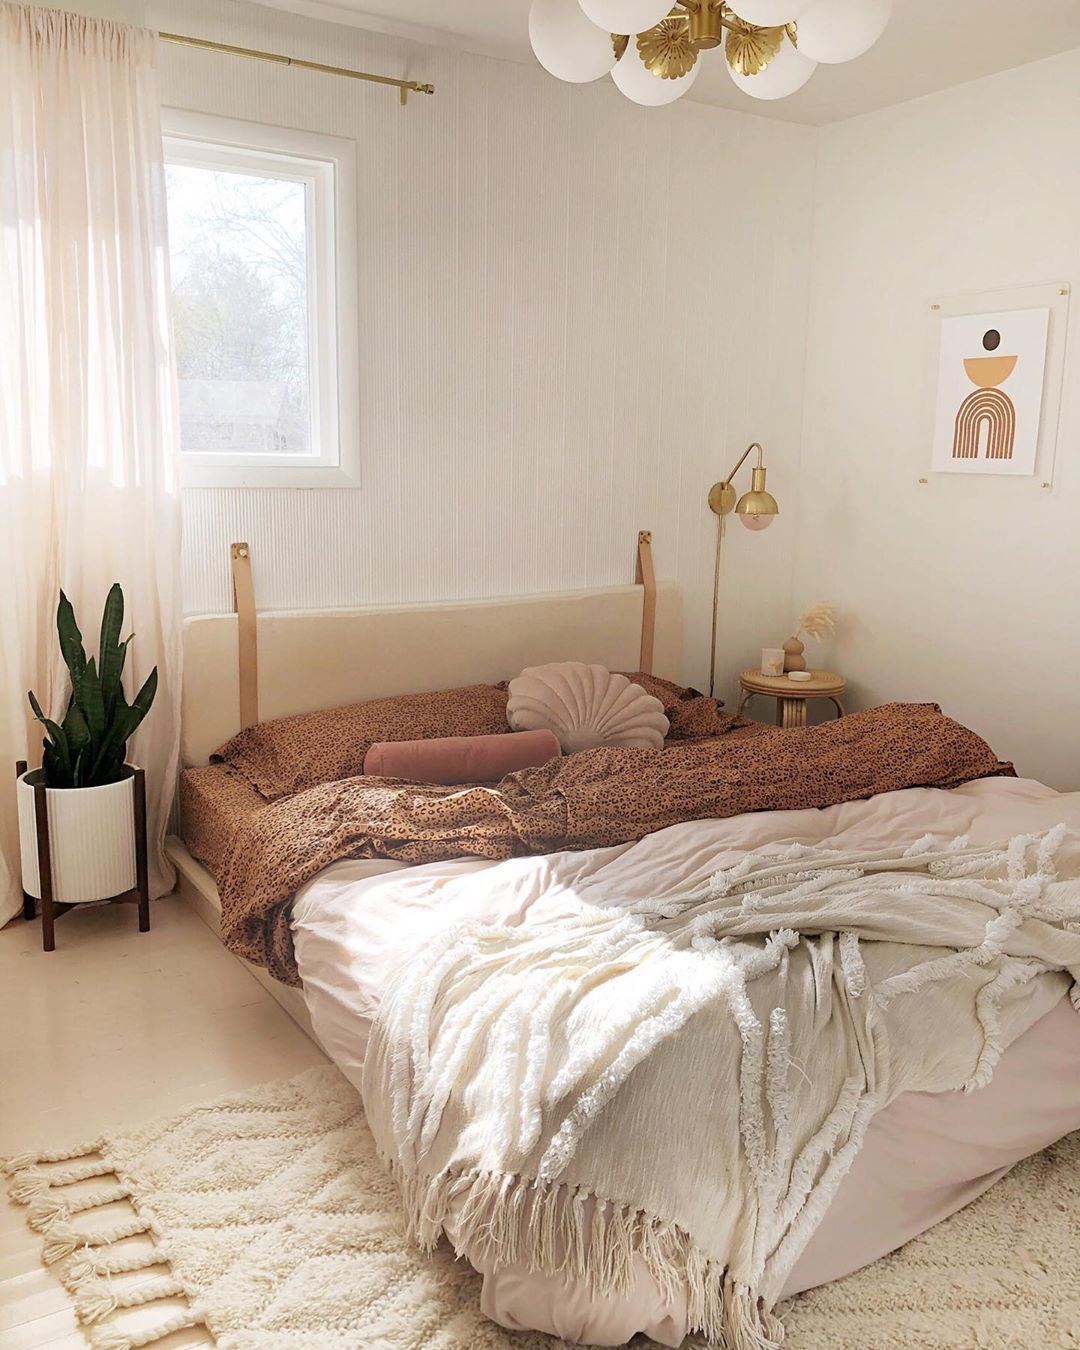 pin by aspen renee cross on home sleep space in 2020 on better quality sleep with better bedroom decorations id=67779